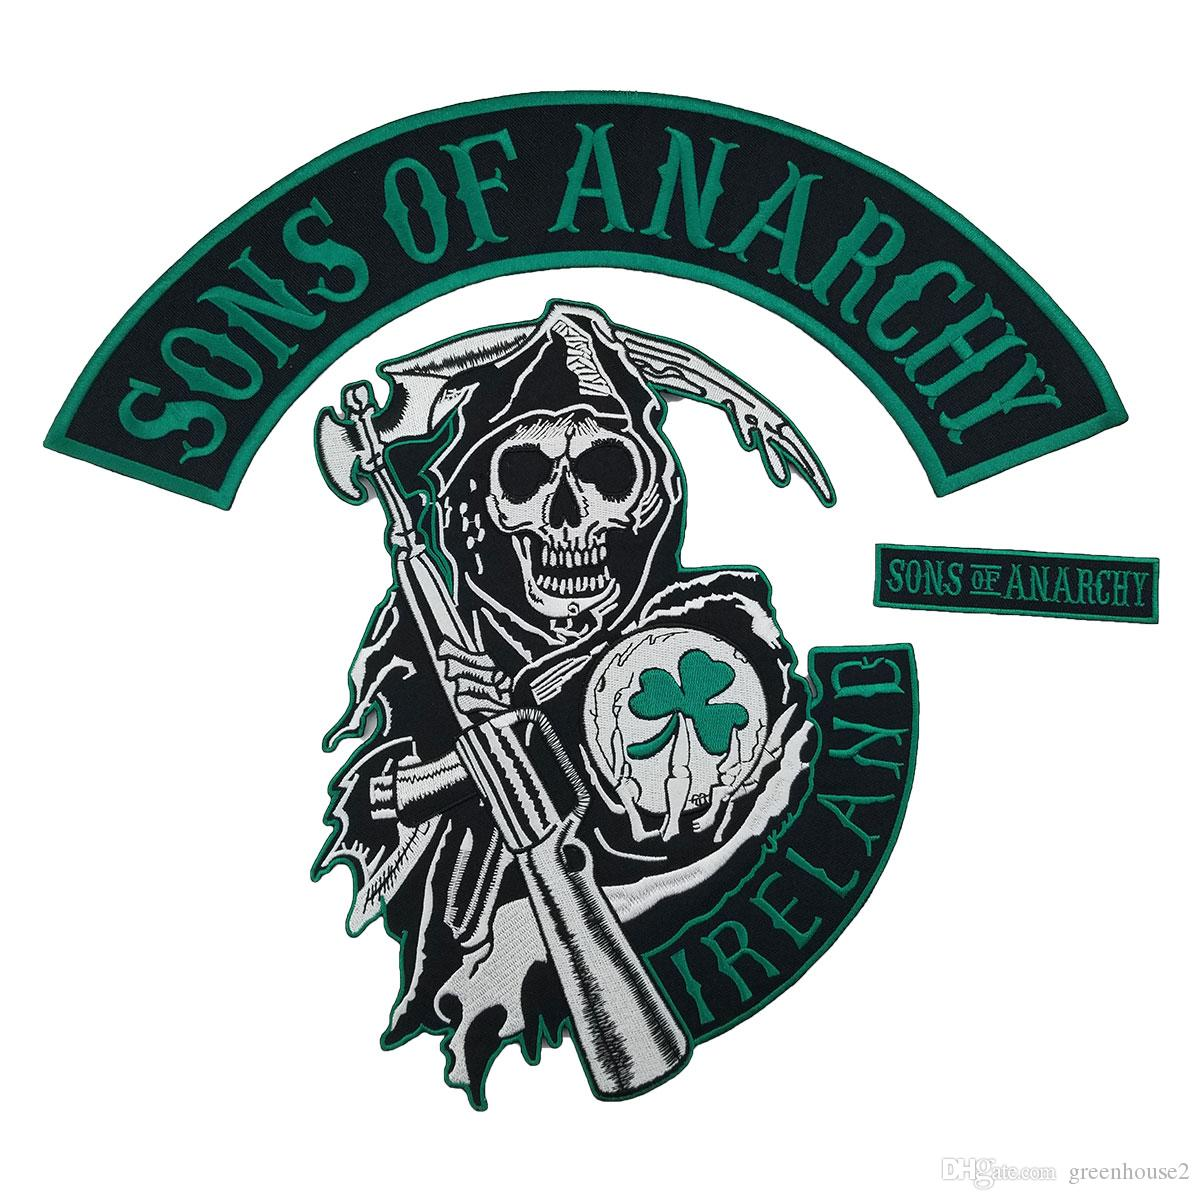 2019 IRELAND SONS OF ANARCHY Patch Motorcycle Club MC Tradition Biker Vest Big Punk Embroidery Applique From Greenhouse2